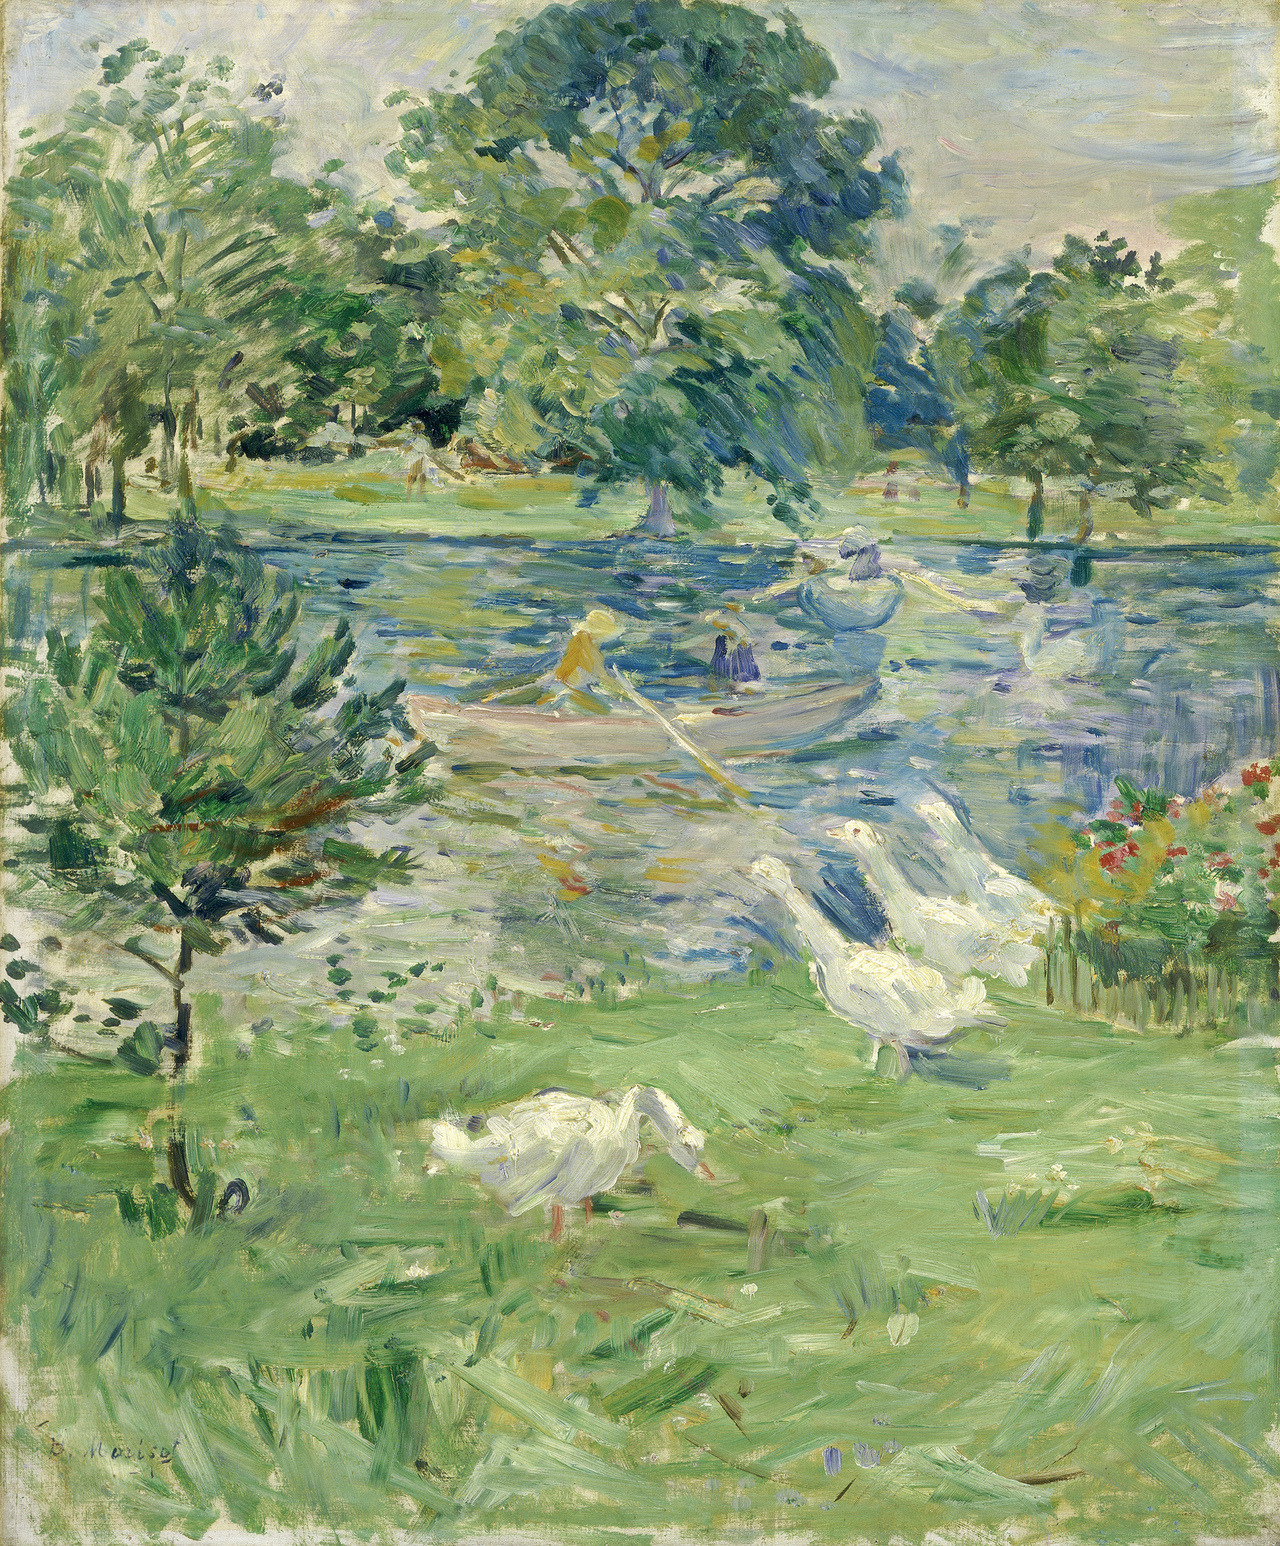 Berthe Morisot - Girl in a Boat with Geese, 1889. Oil on canvas